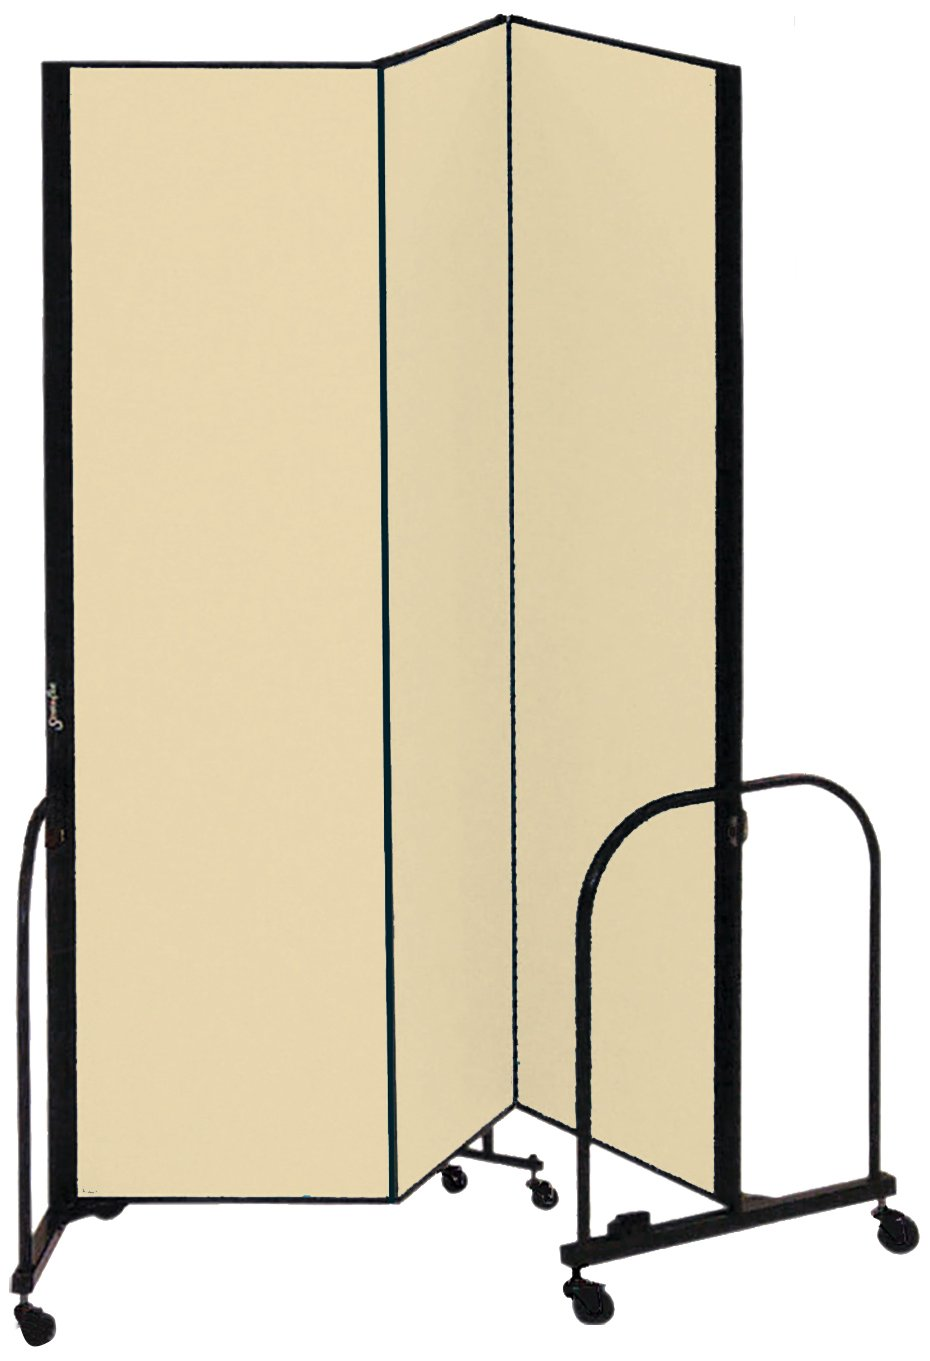 Screenflex Commercial Portable Room Divider (CFSL683-DW) 6 Feet 8 Inches High by 5 Feet 9 Inches Long, Designer Desert Fabric